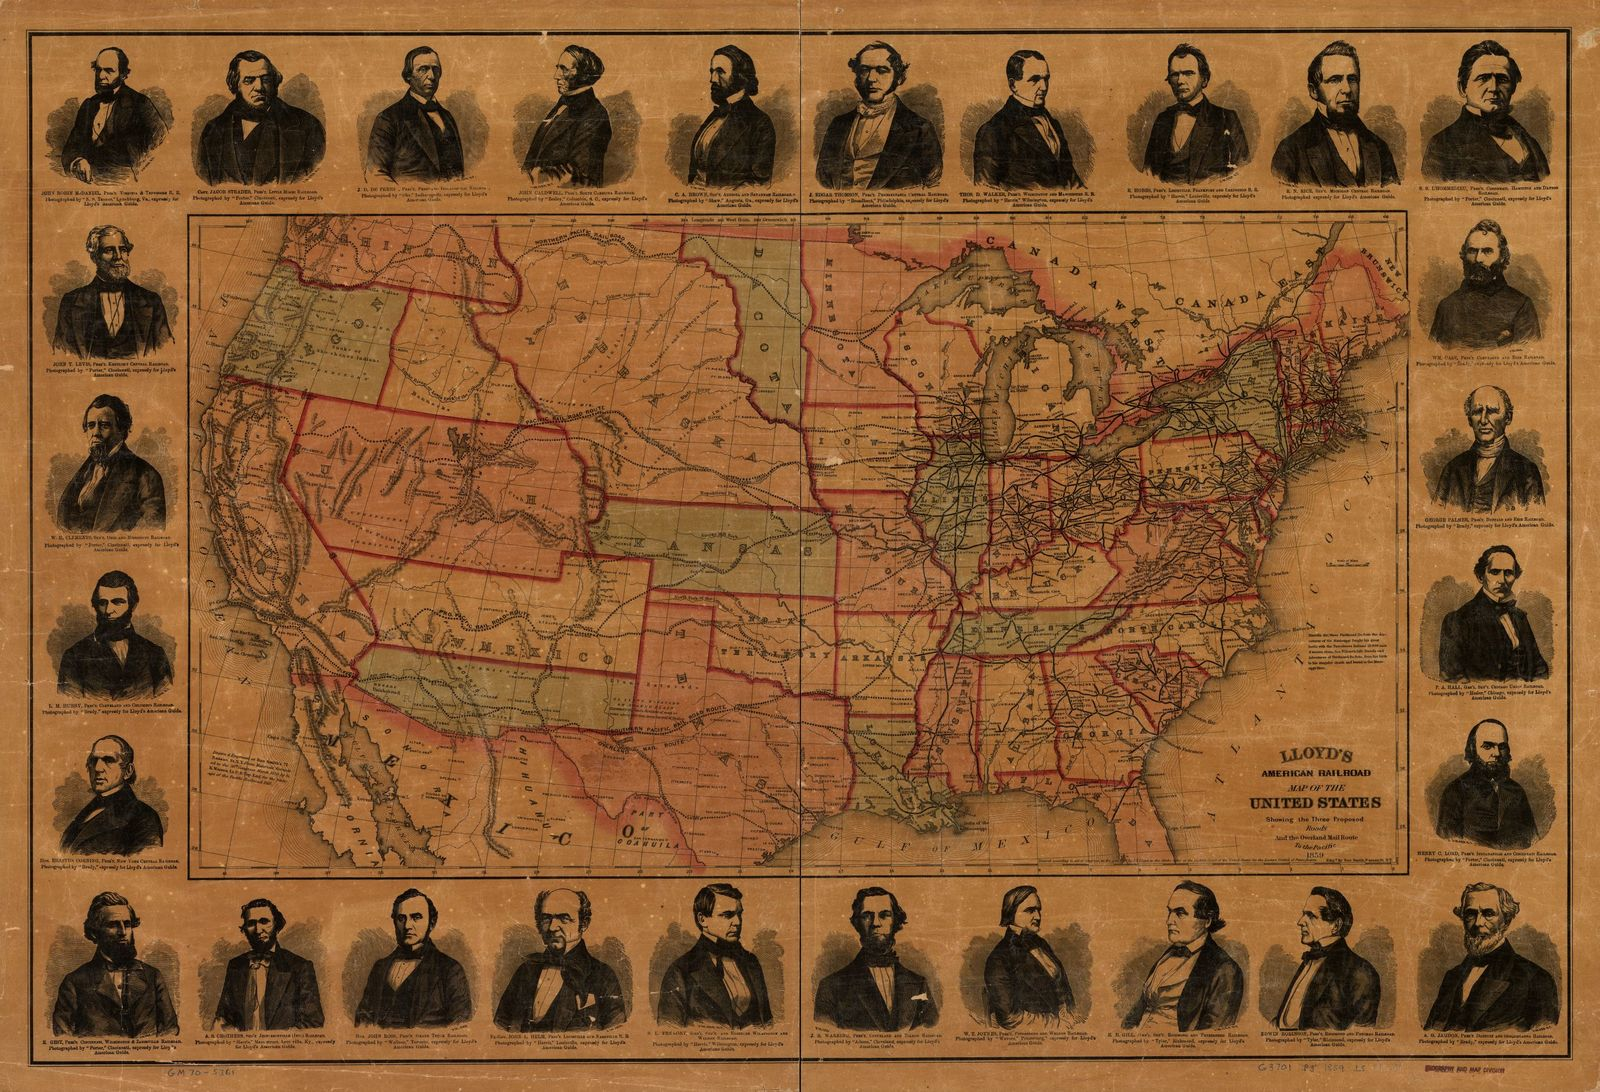 Lloyd's American railroad map of the United States, showing the three proposed roads and the overland mail route to the Pacific,